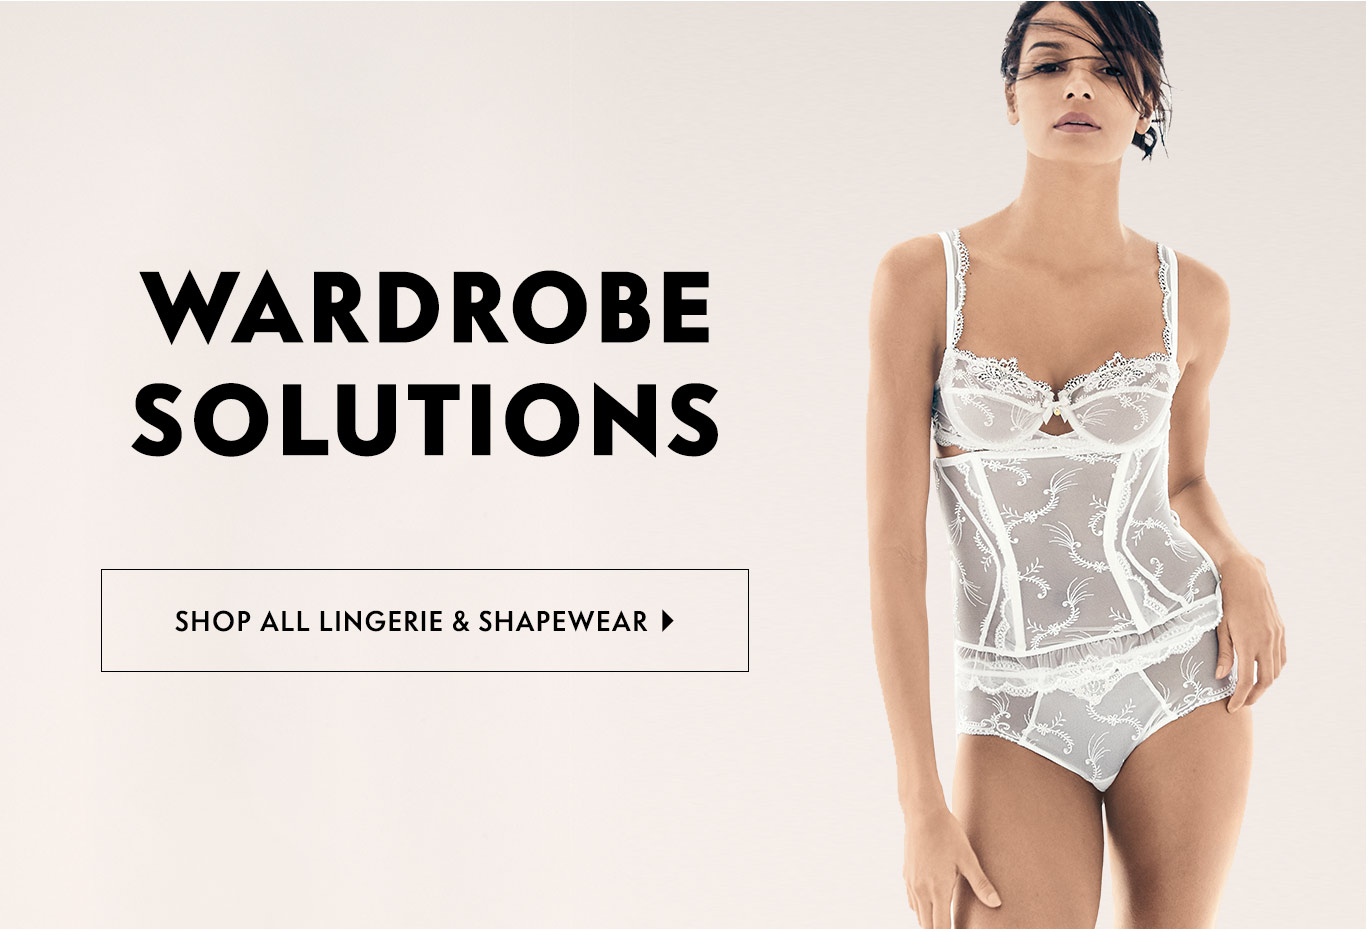 Shop all Lingerie & Shapewear